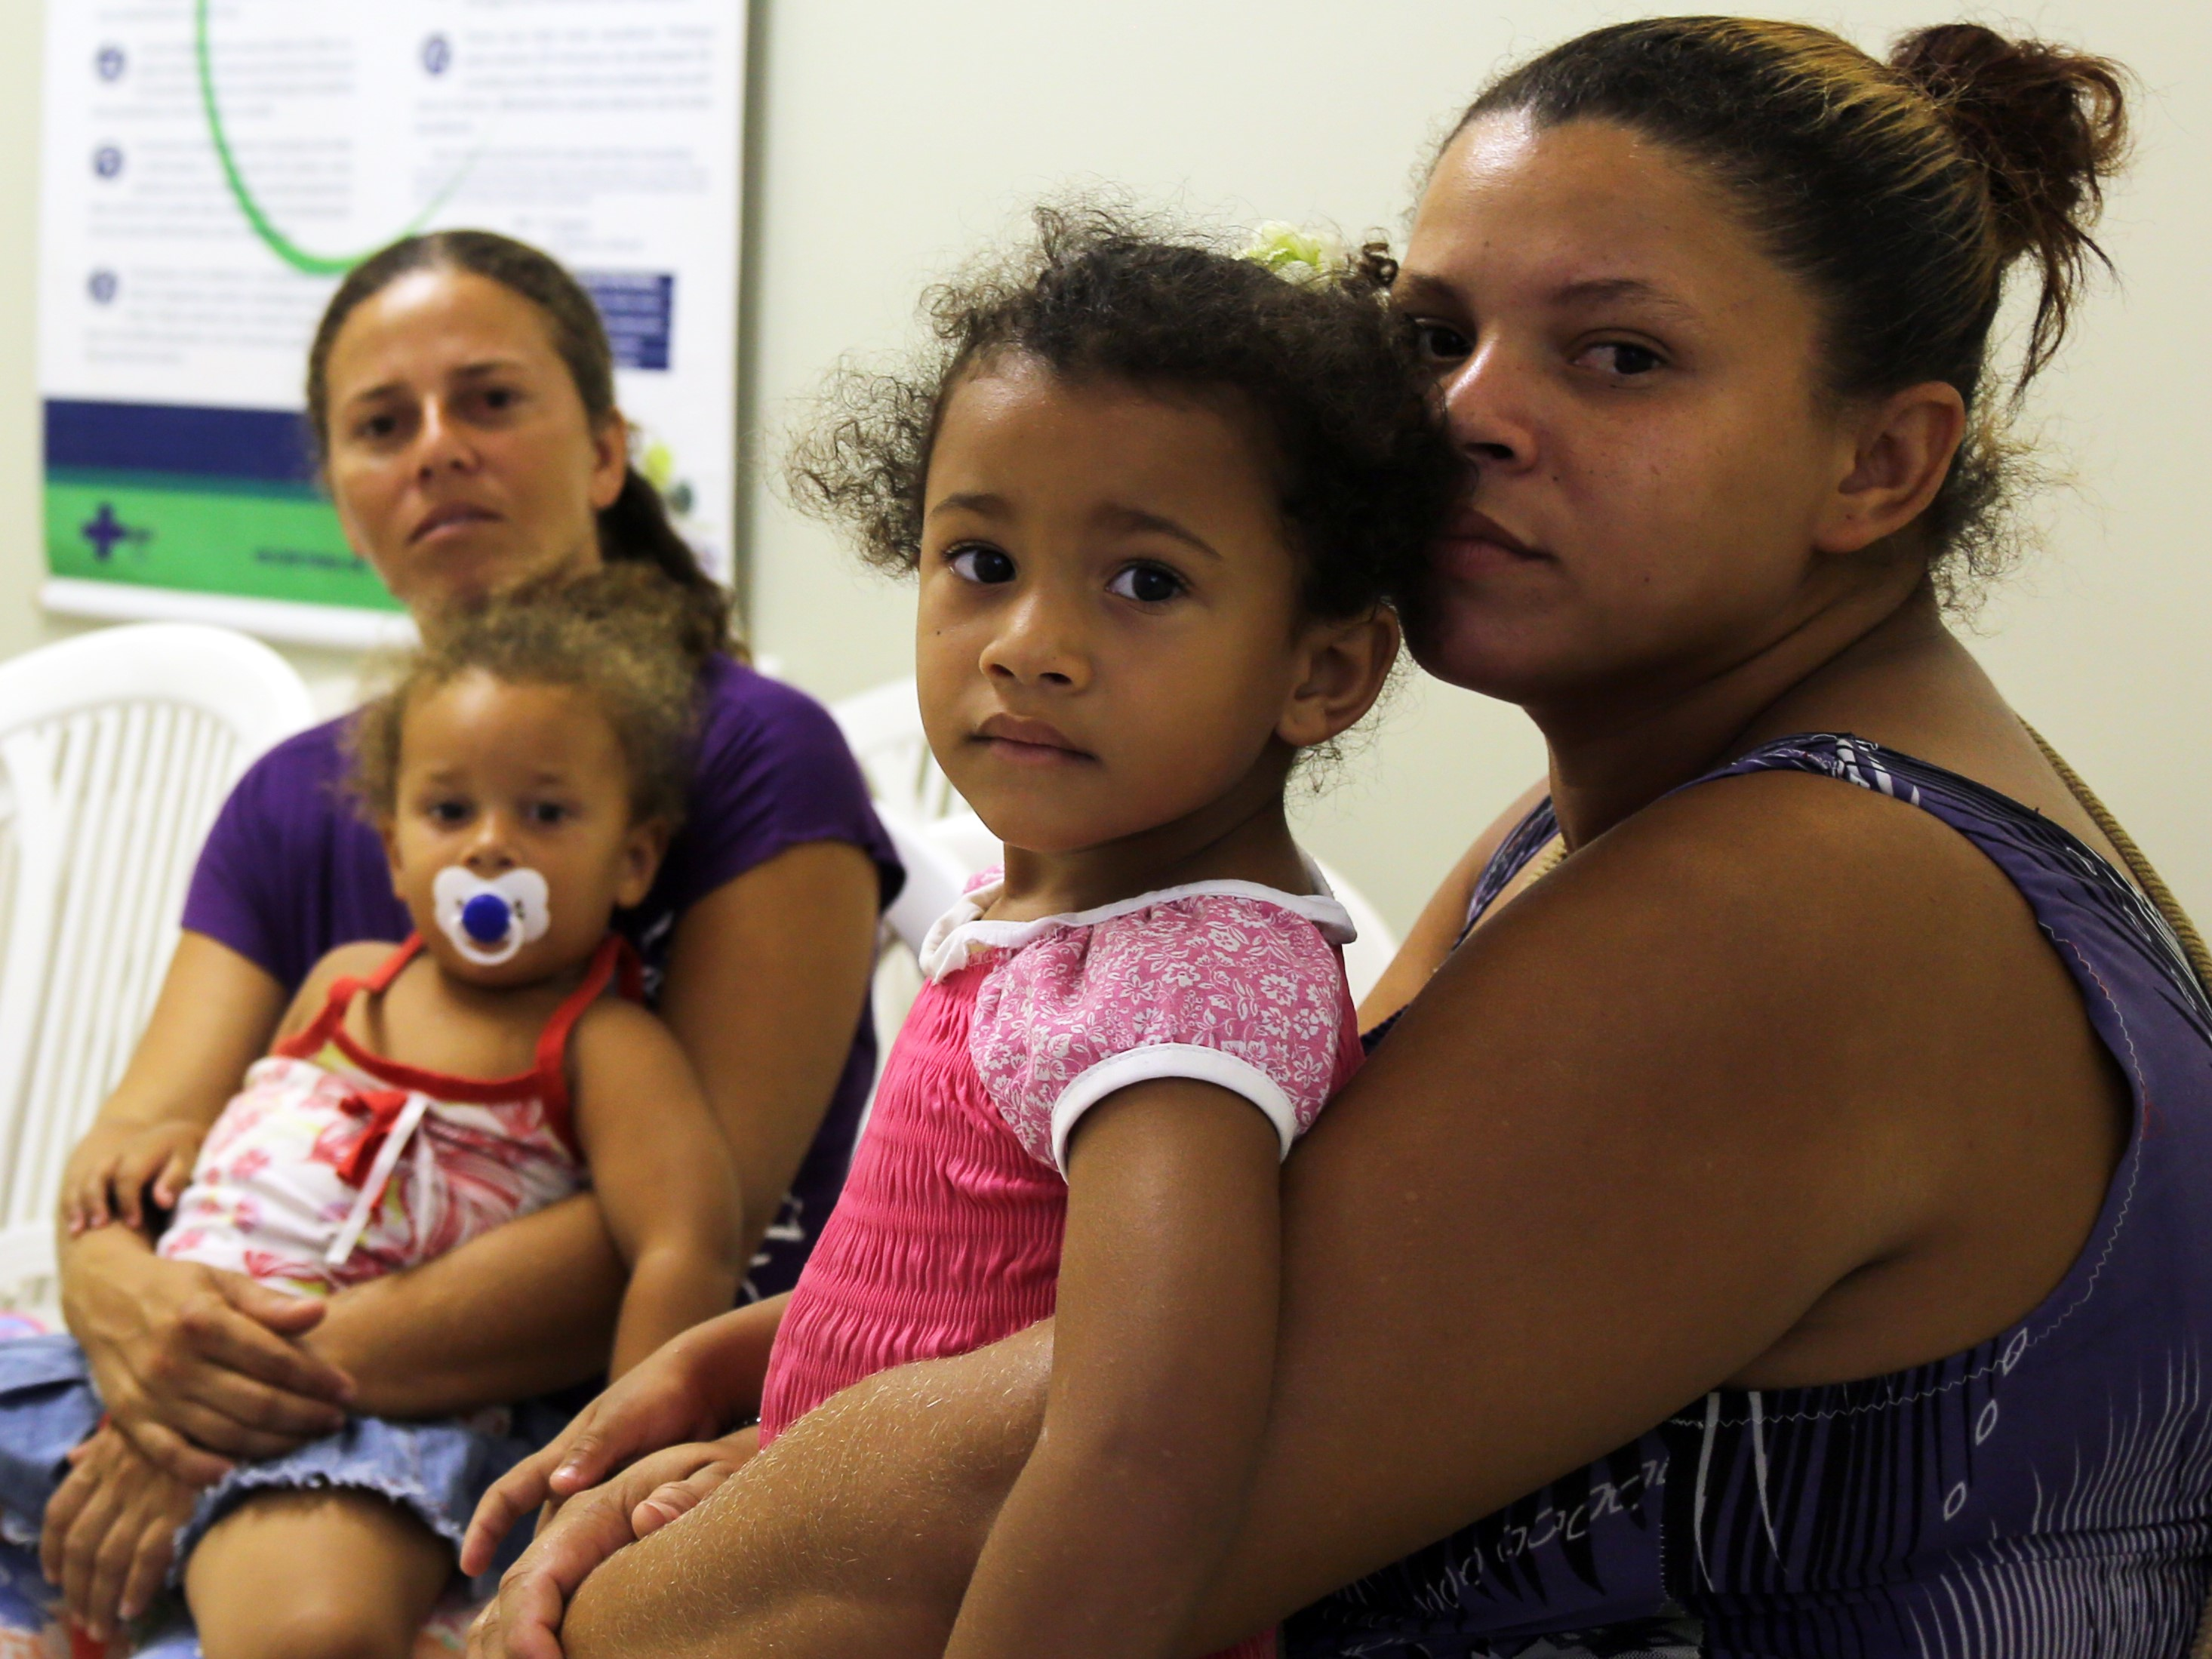 Two women with young girls on their laps, one with a pacifier, awaiting doctor's appointments in an office. Posted to accompany GCIR's brief and funding recommendations, Protecting Families and Advancing Belonging: How Philanthropy Can Answer Threats to the Well-Being of Immigrants.